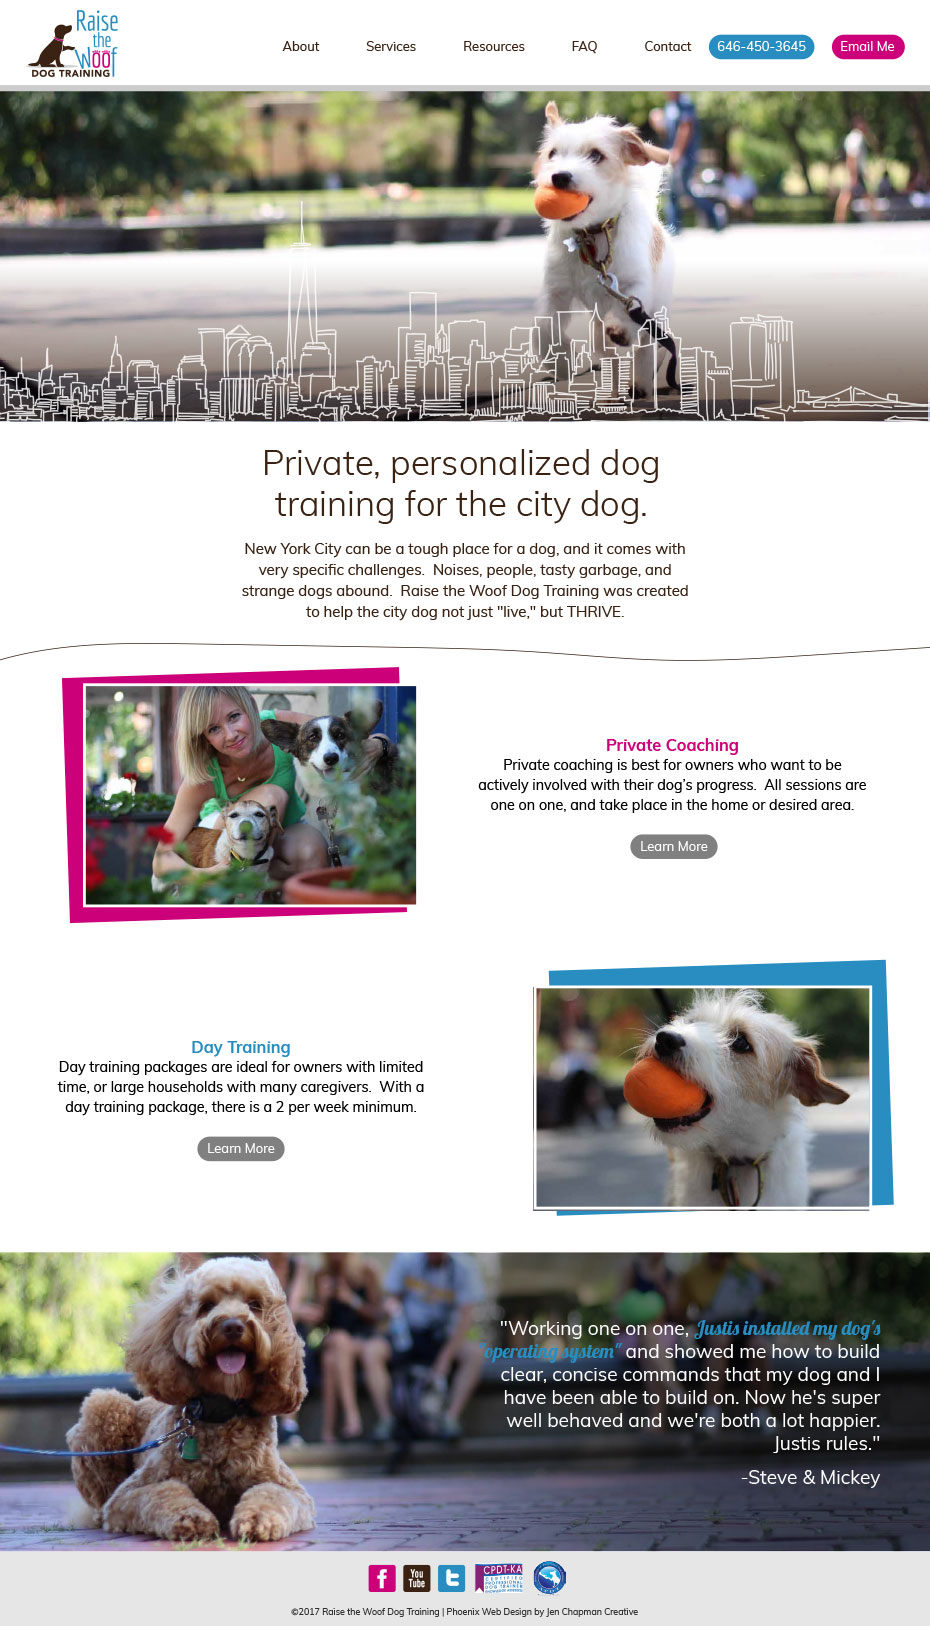 Raise the Woof! Phoenix Website Design